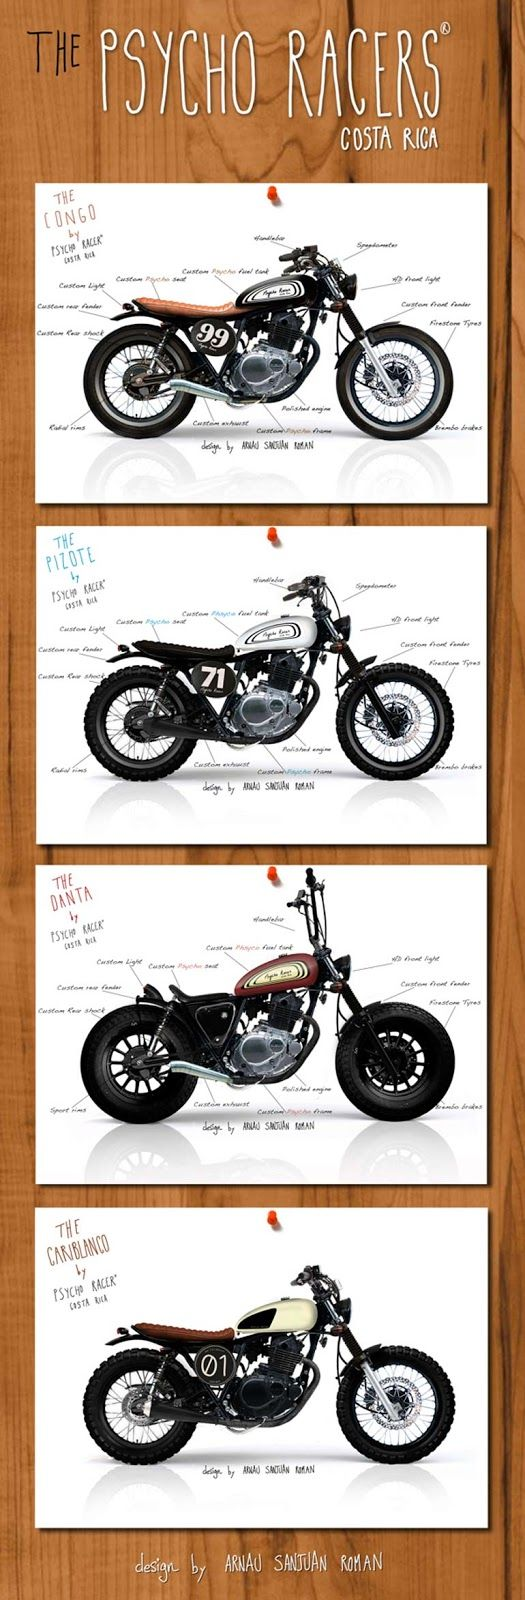 Development of a custom motorcycles family for the central america market, using the base of the Suzuki GN 125 & 250 cc